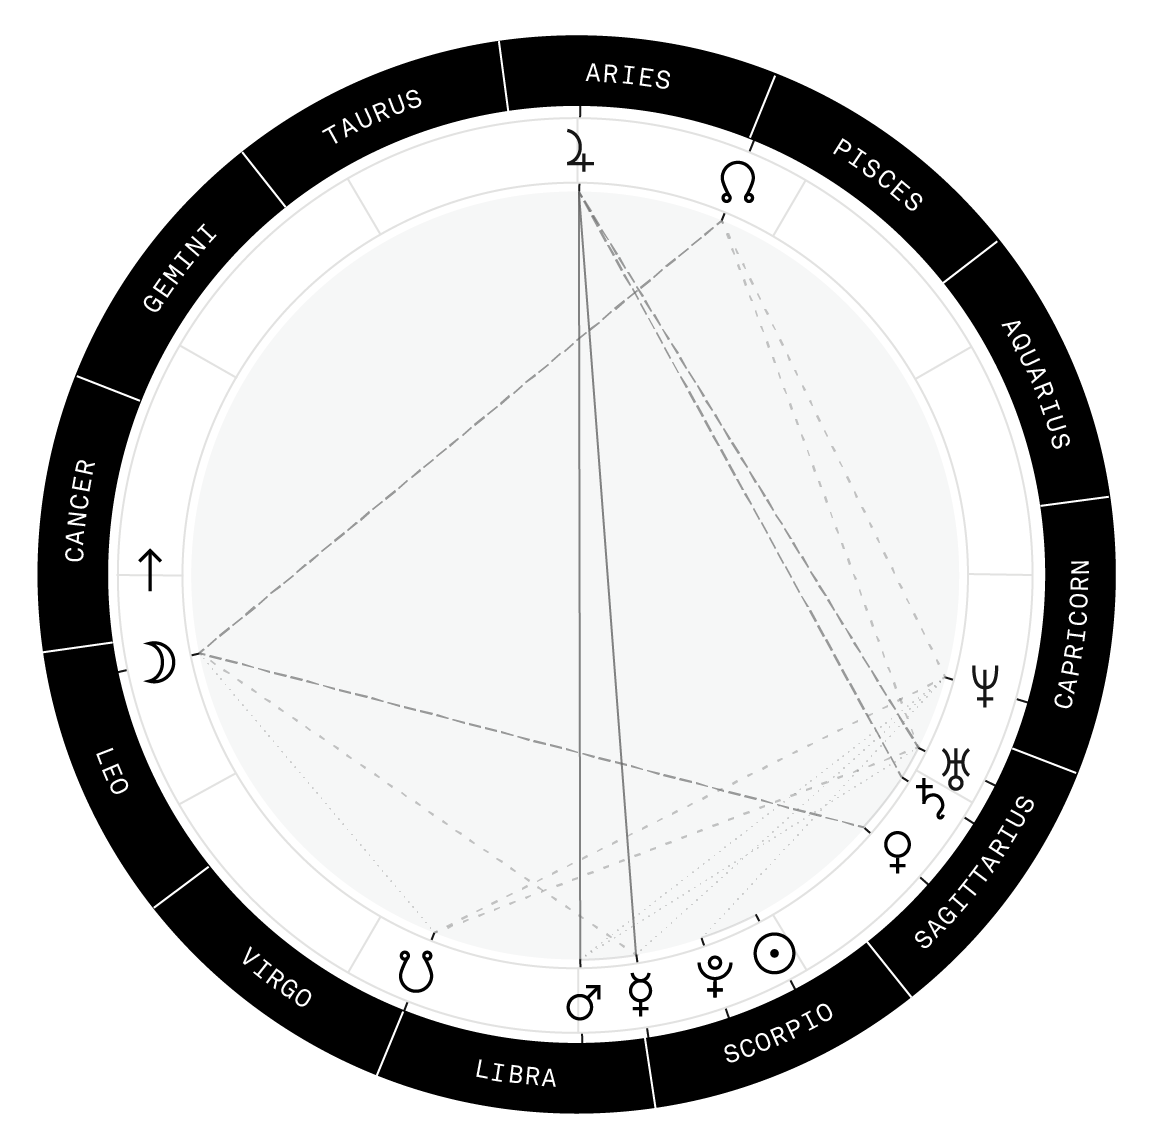 Free Natal Chart | Co – Star: Hyper-Personalized, Real-Time Horoscopes